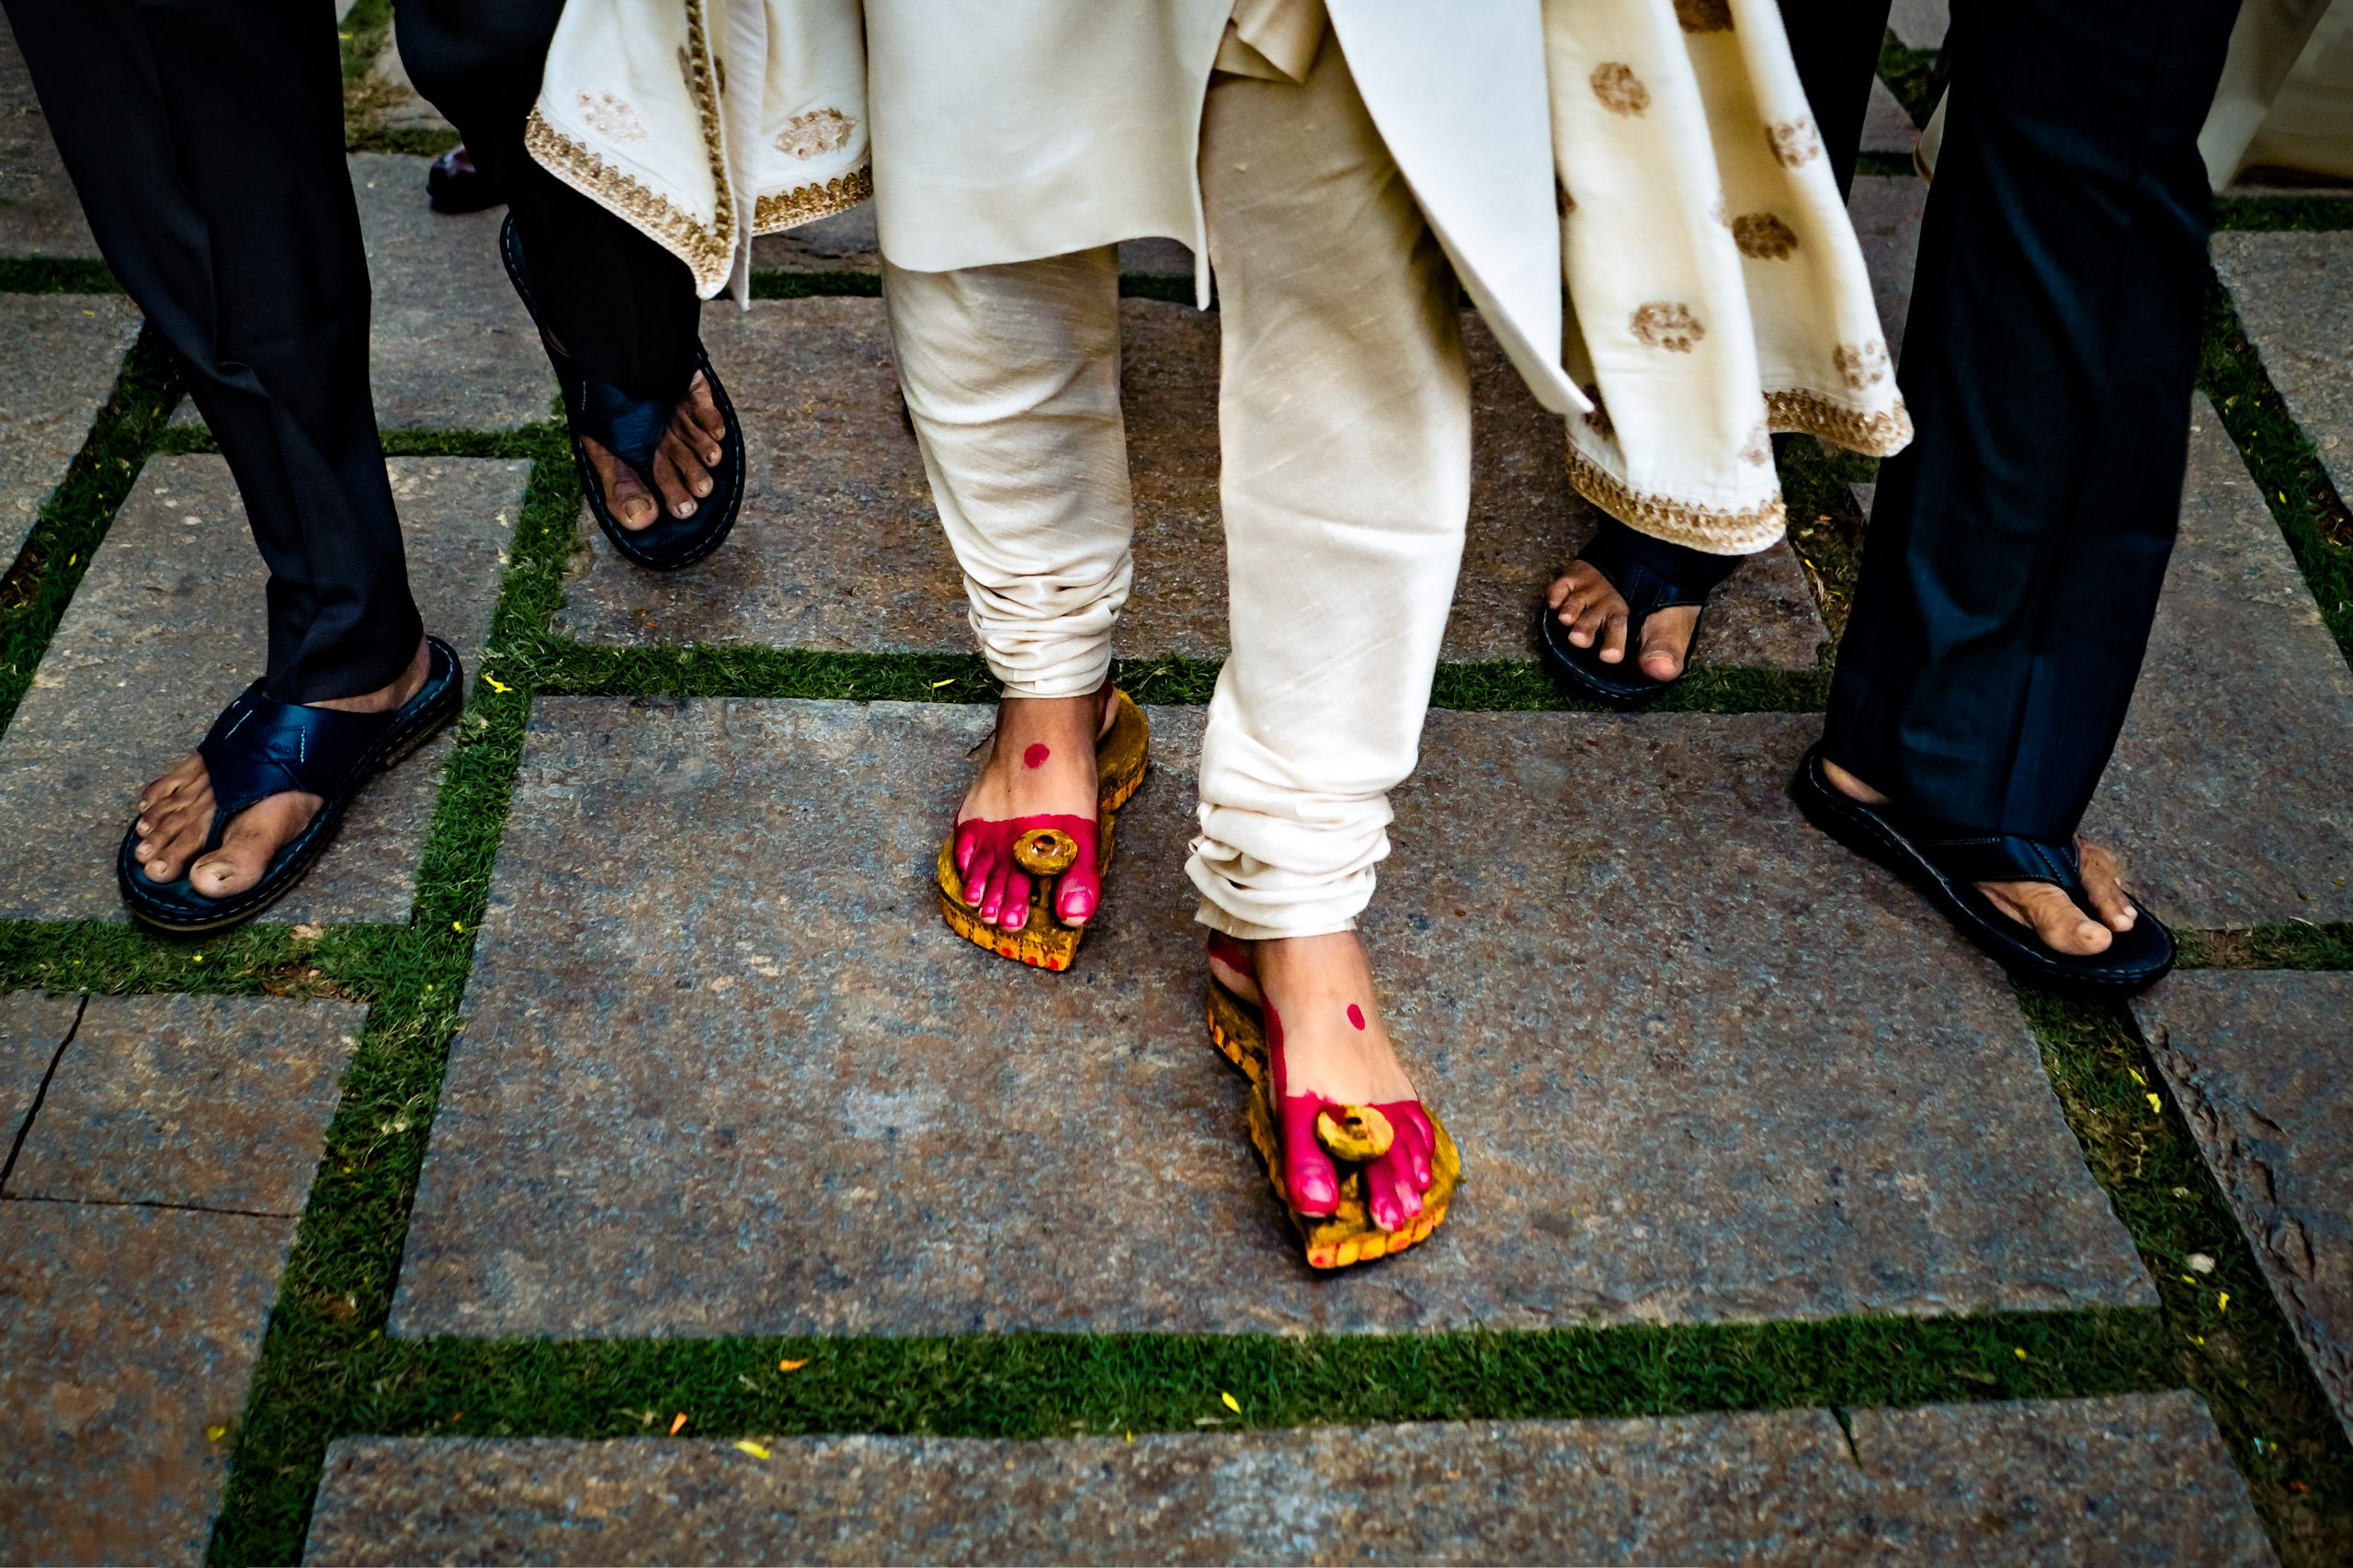 Groom and guests wearing sandals walk across stone path